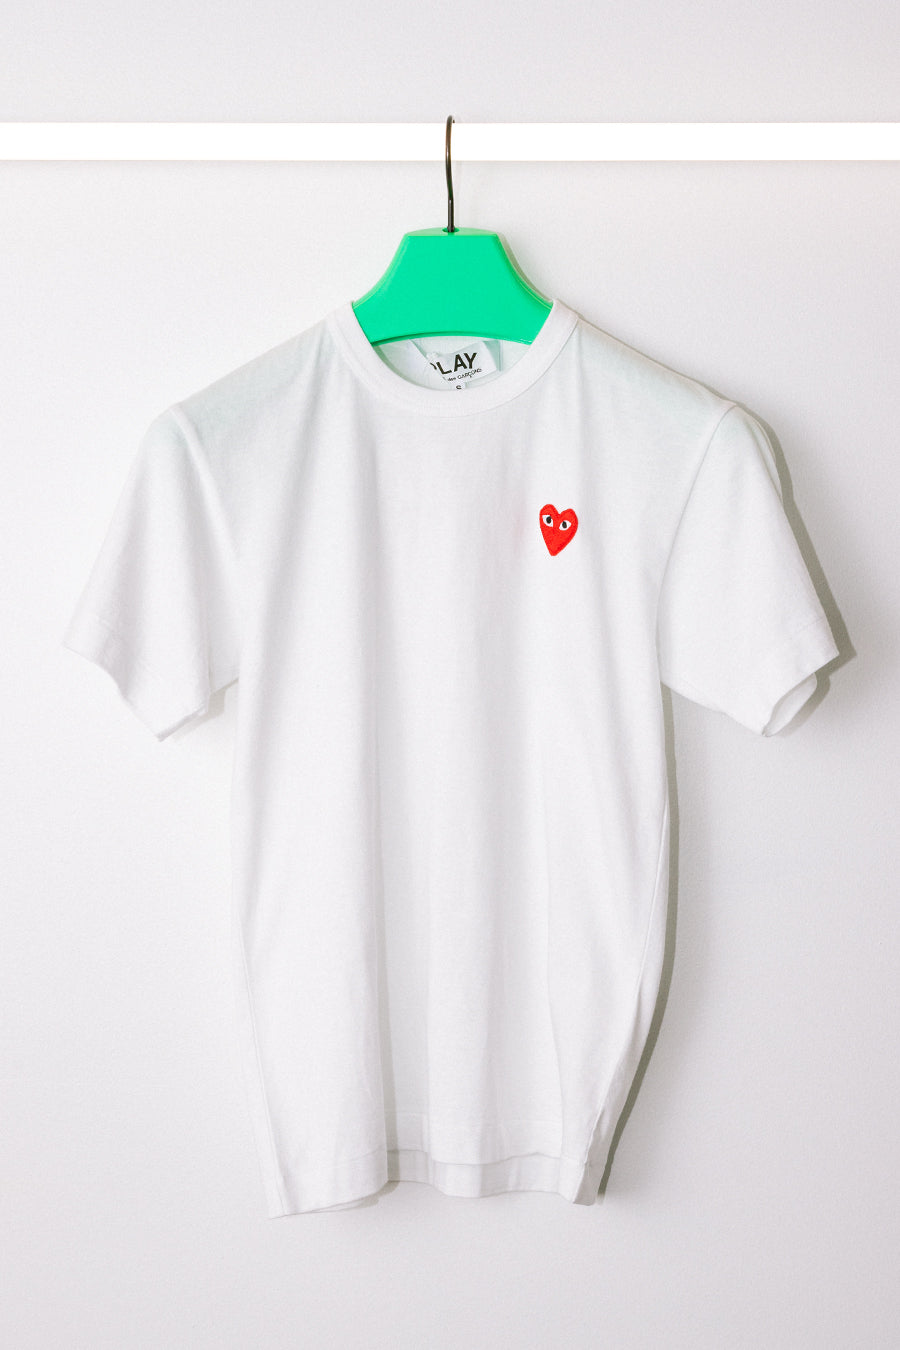 Comme des Garçons PLAY - White & Red Heart Patch T-Shirt